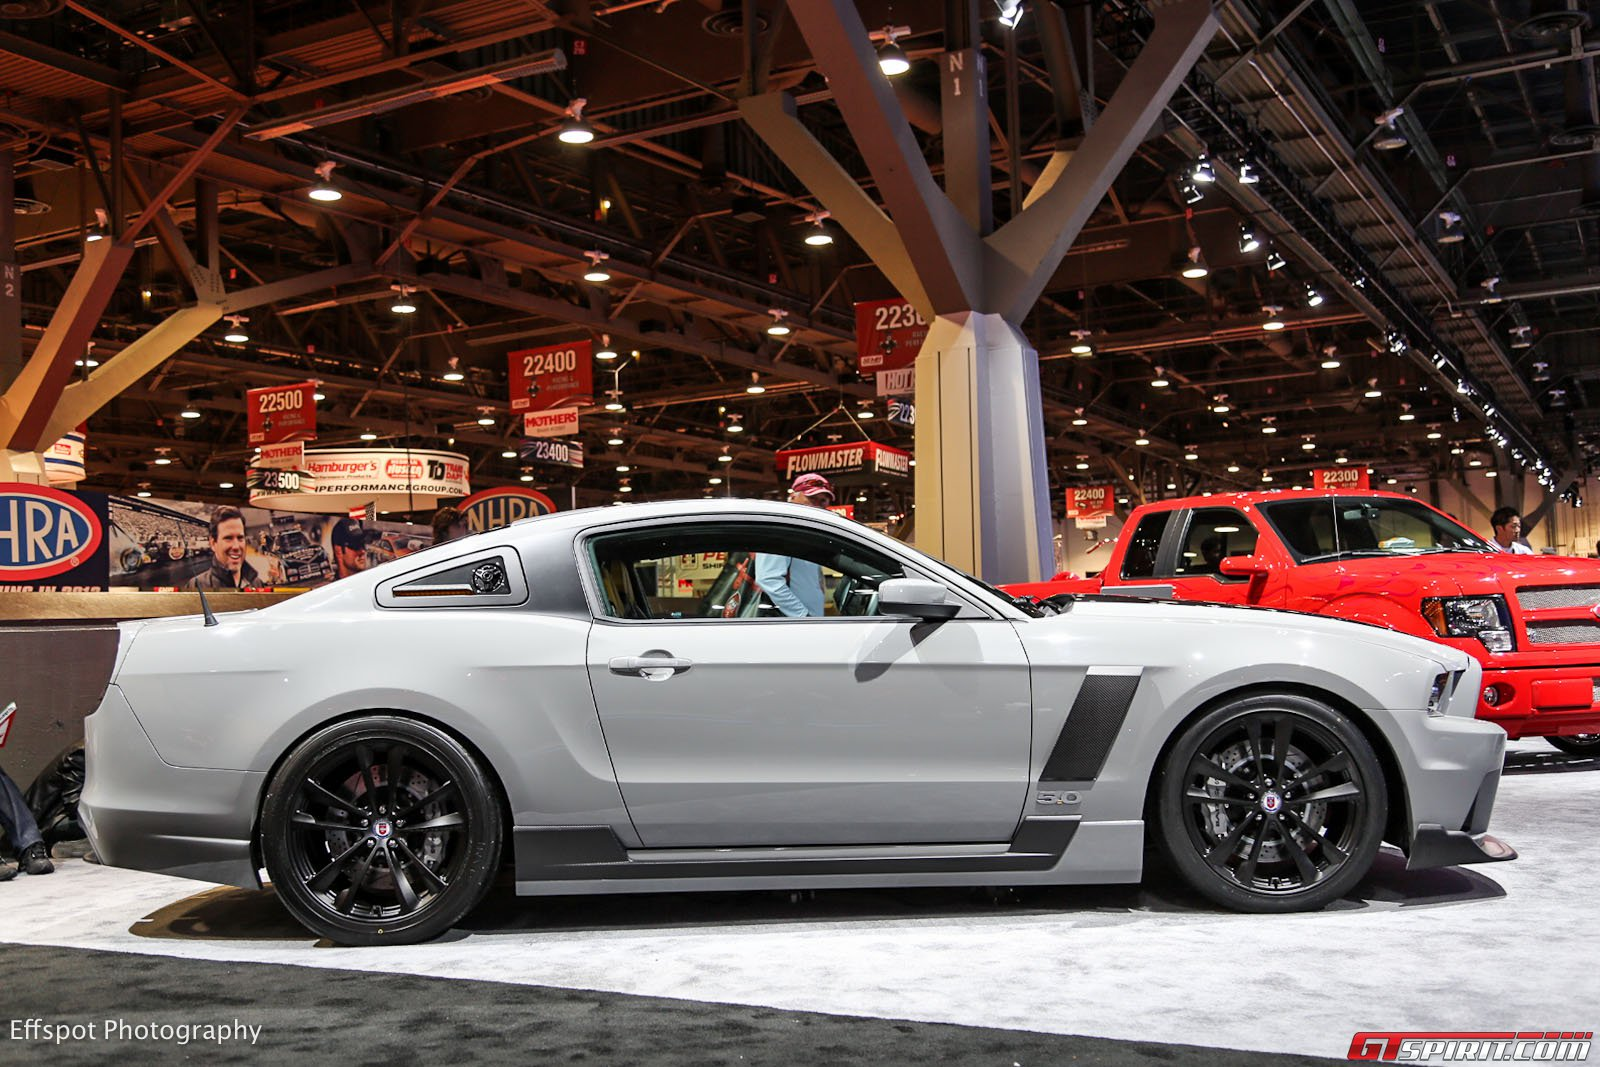 http://www.gtspirit.com/wp-content/gallery/sema-2012-ford-mustang-gt-ringbrothers-edition/p54a5517.jpg